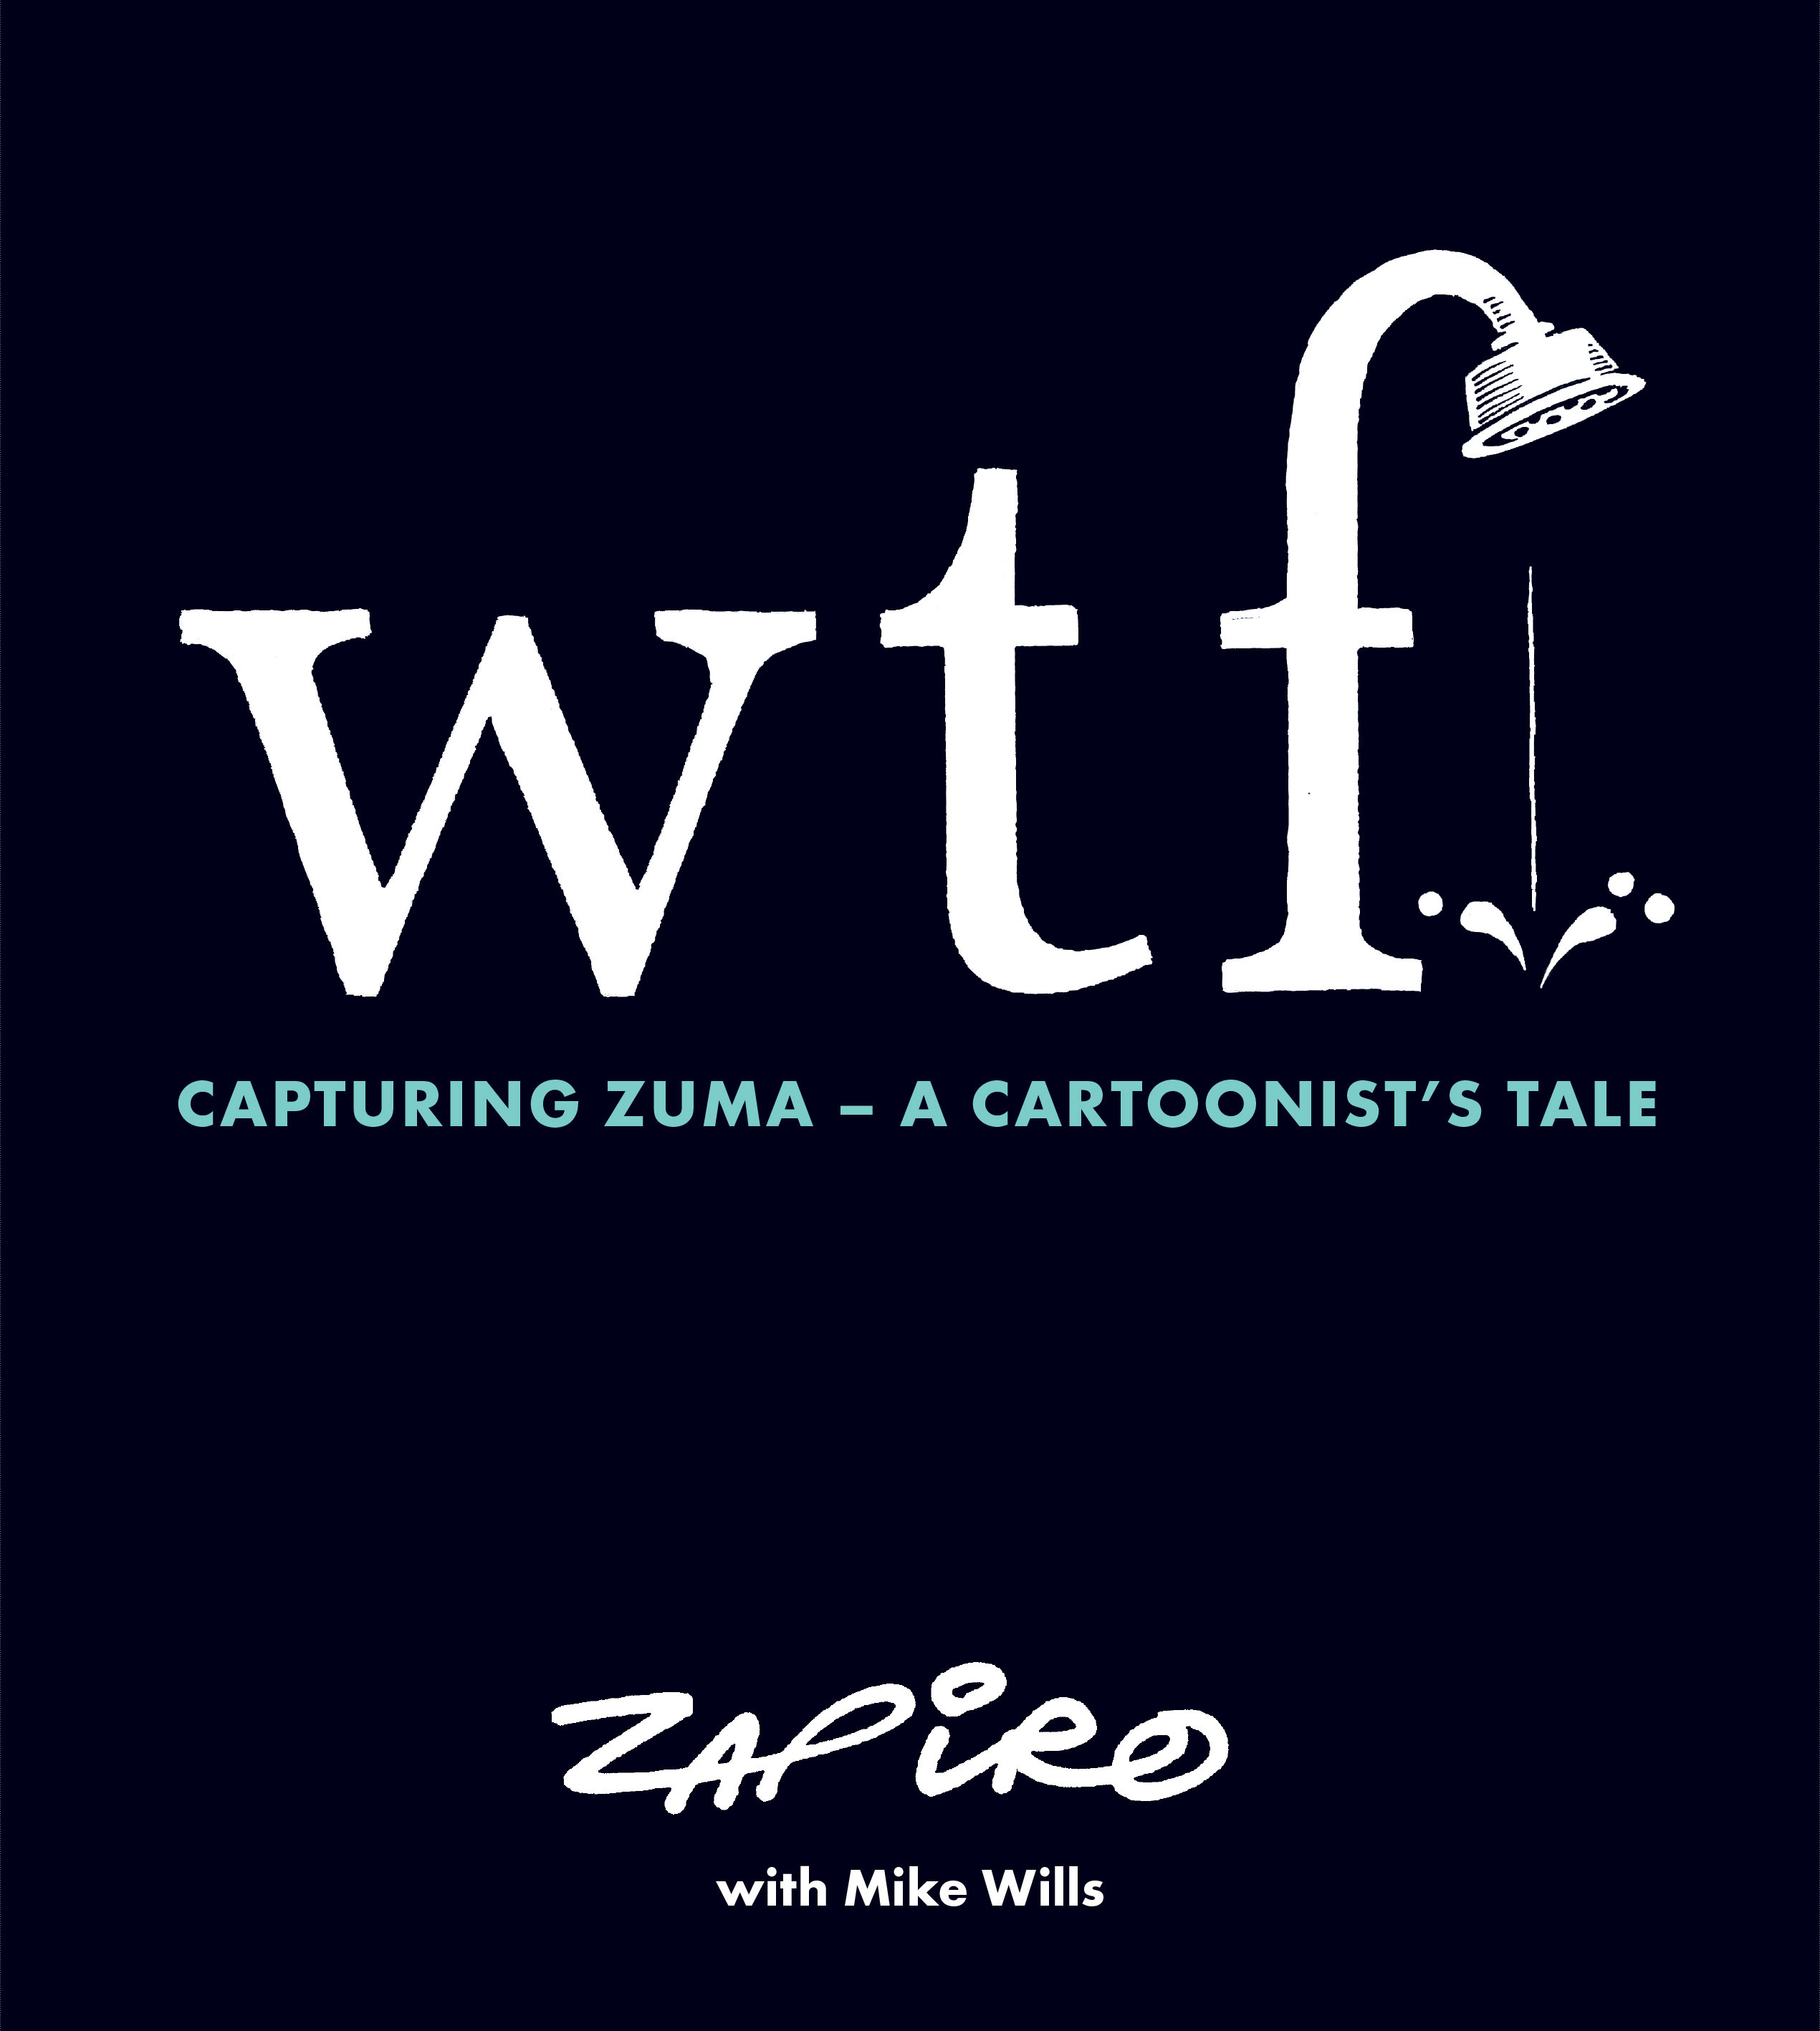 WTF: Capturing Zuma – A Cartoonist's Tale by Zapiro (with Mike Wills)